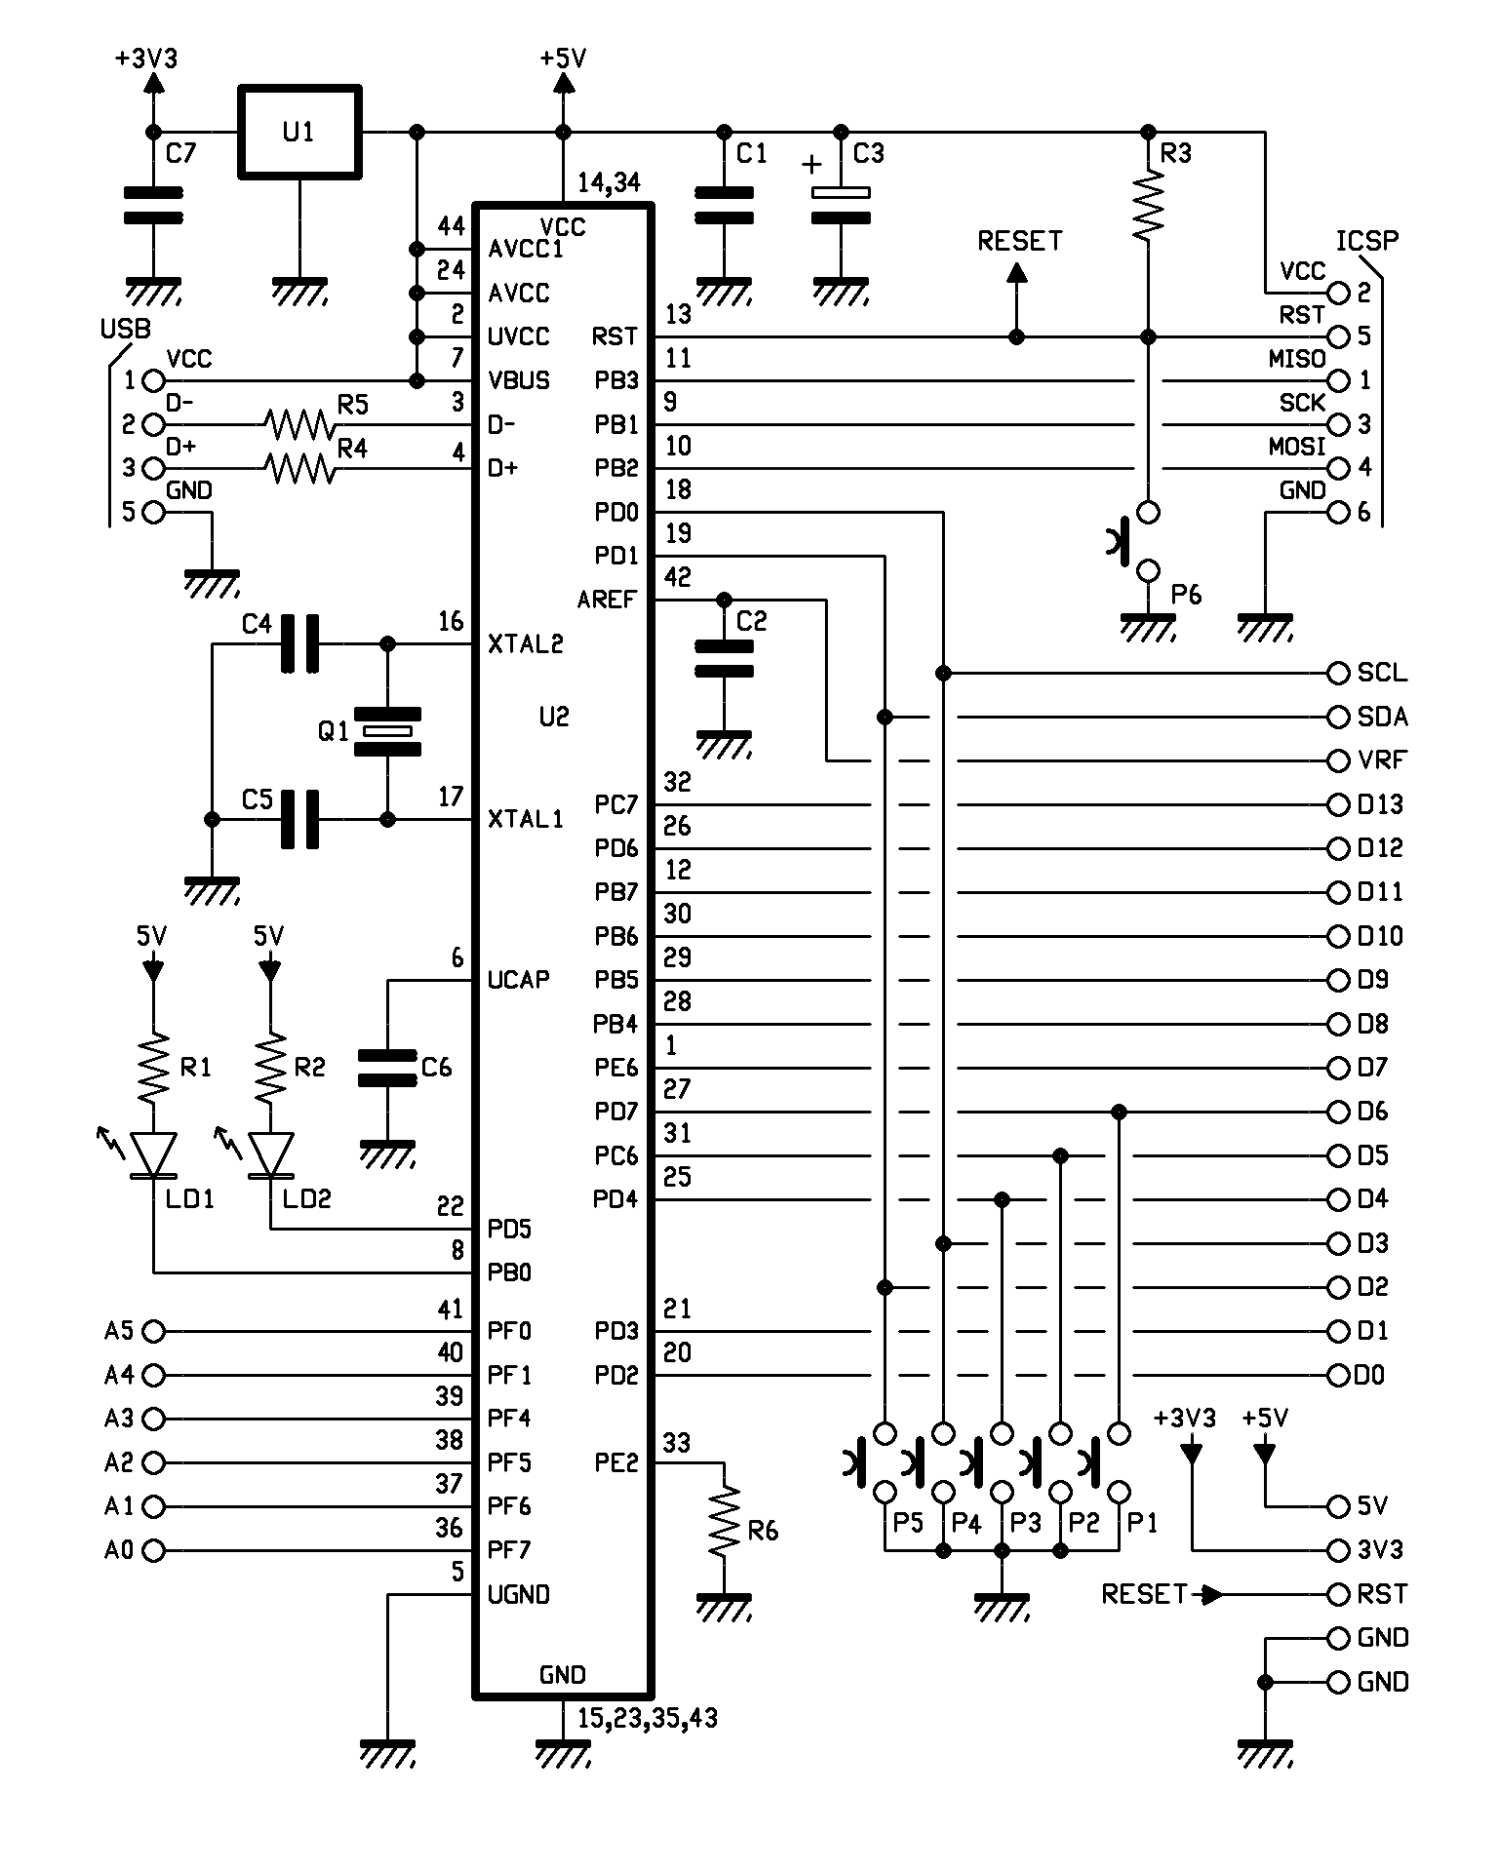 An Electronic Business Card On A Board Open Electronics Circuit Diagram Showing Usb Connections Button That Brings It To Ground When You Have Manually Reset The Microcontroller Automatic Is Managed By Pc Through Connection